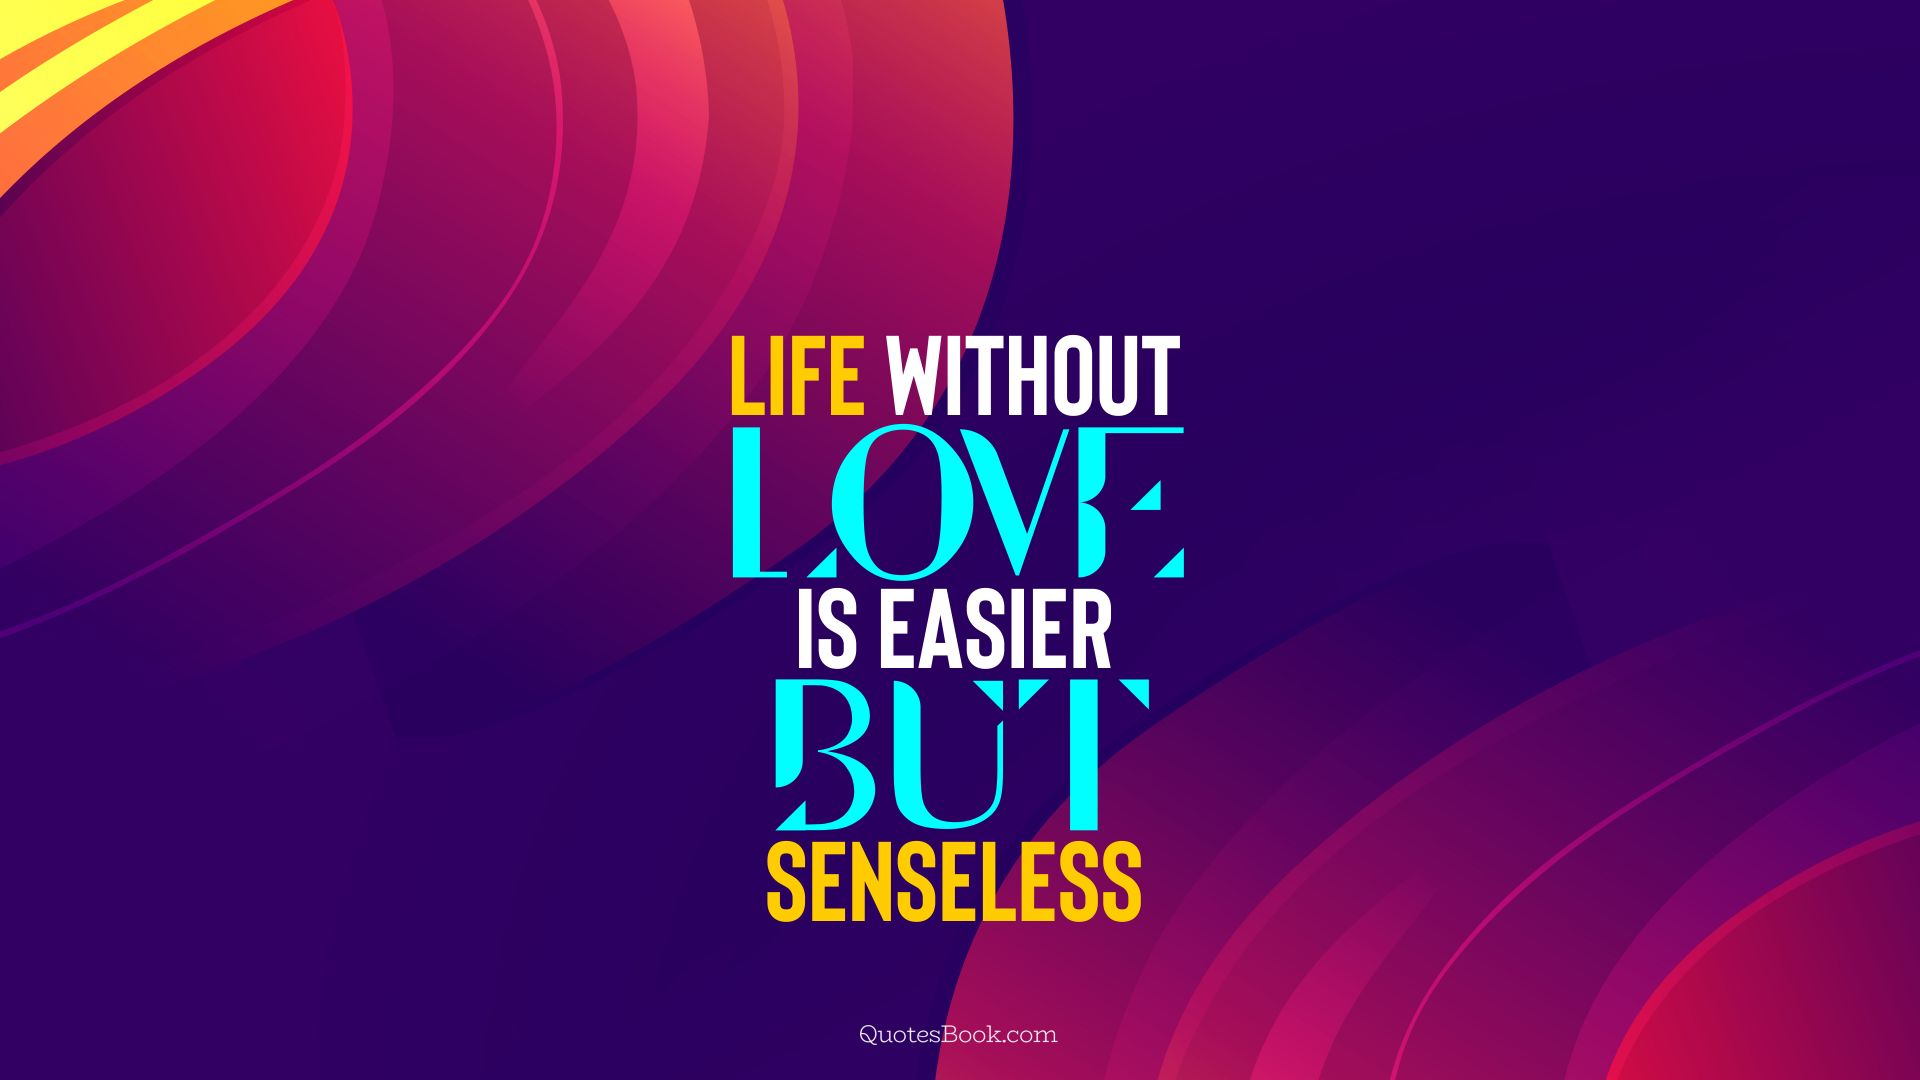 Life without love is easier but senseless. - Quote by QuotesBook